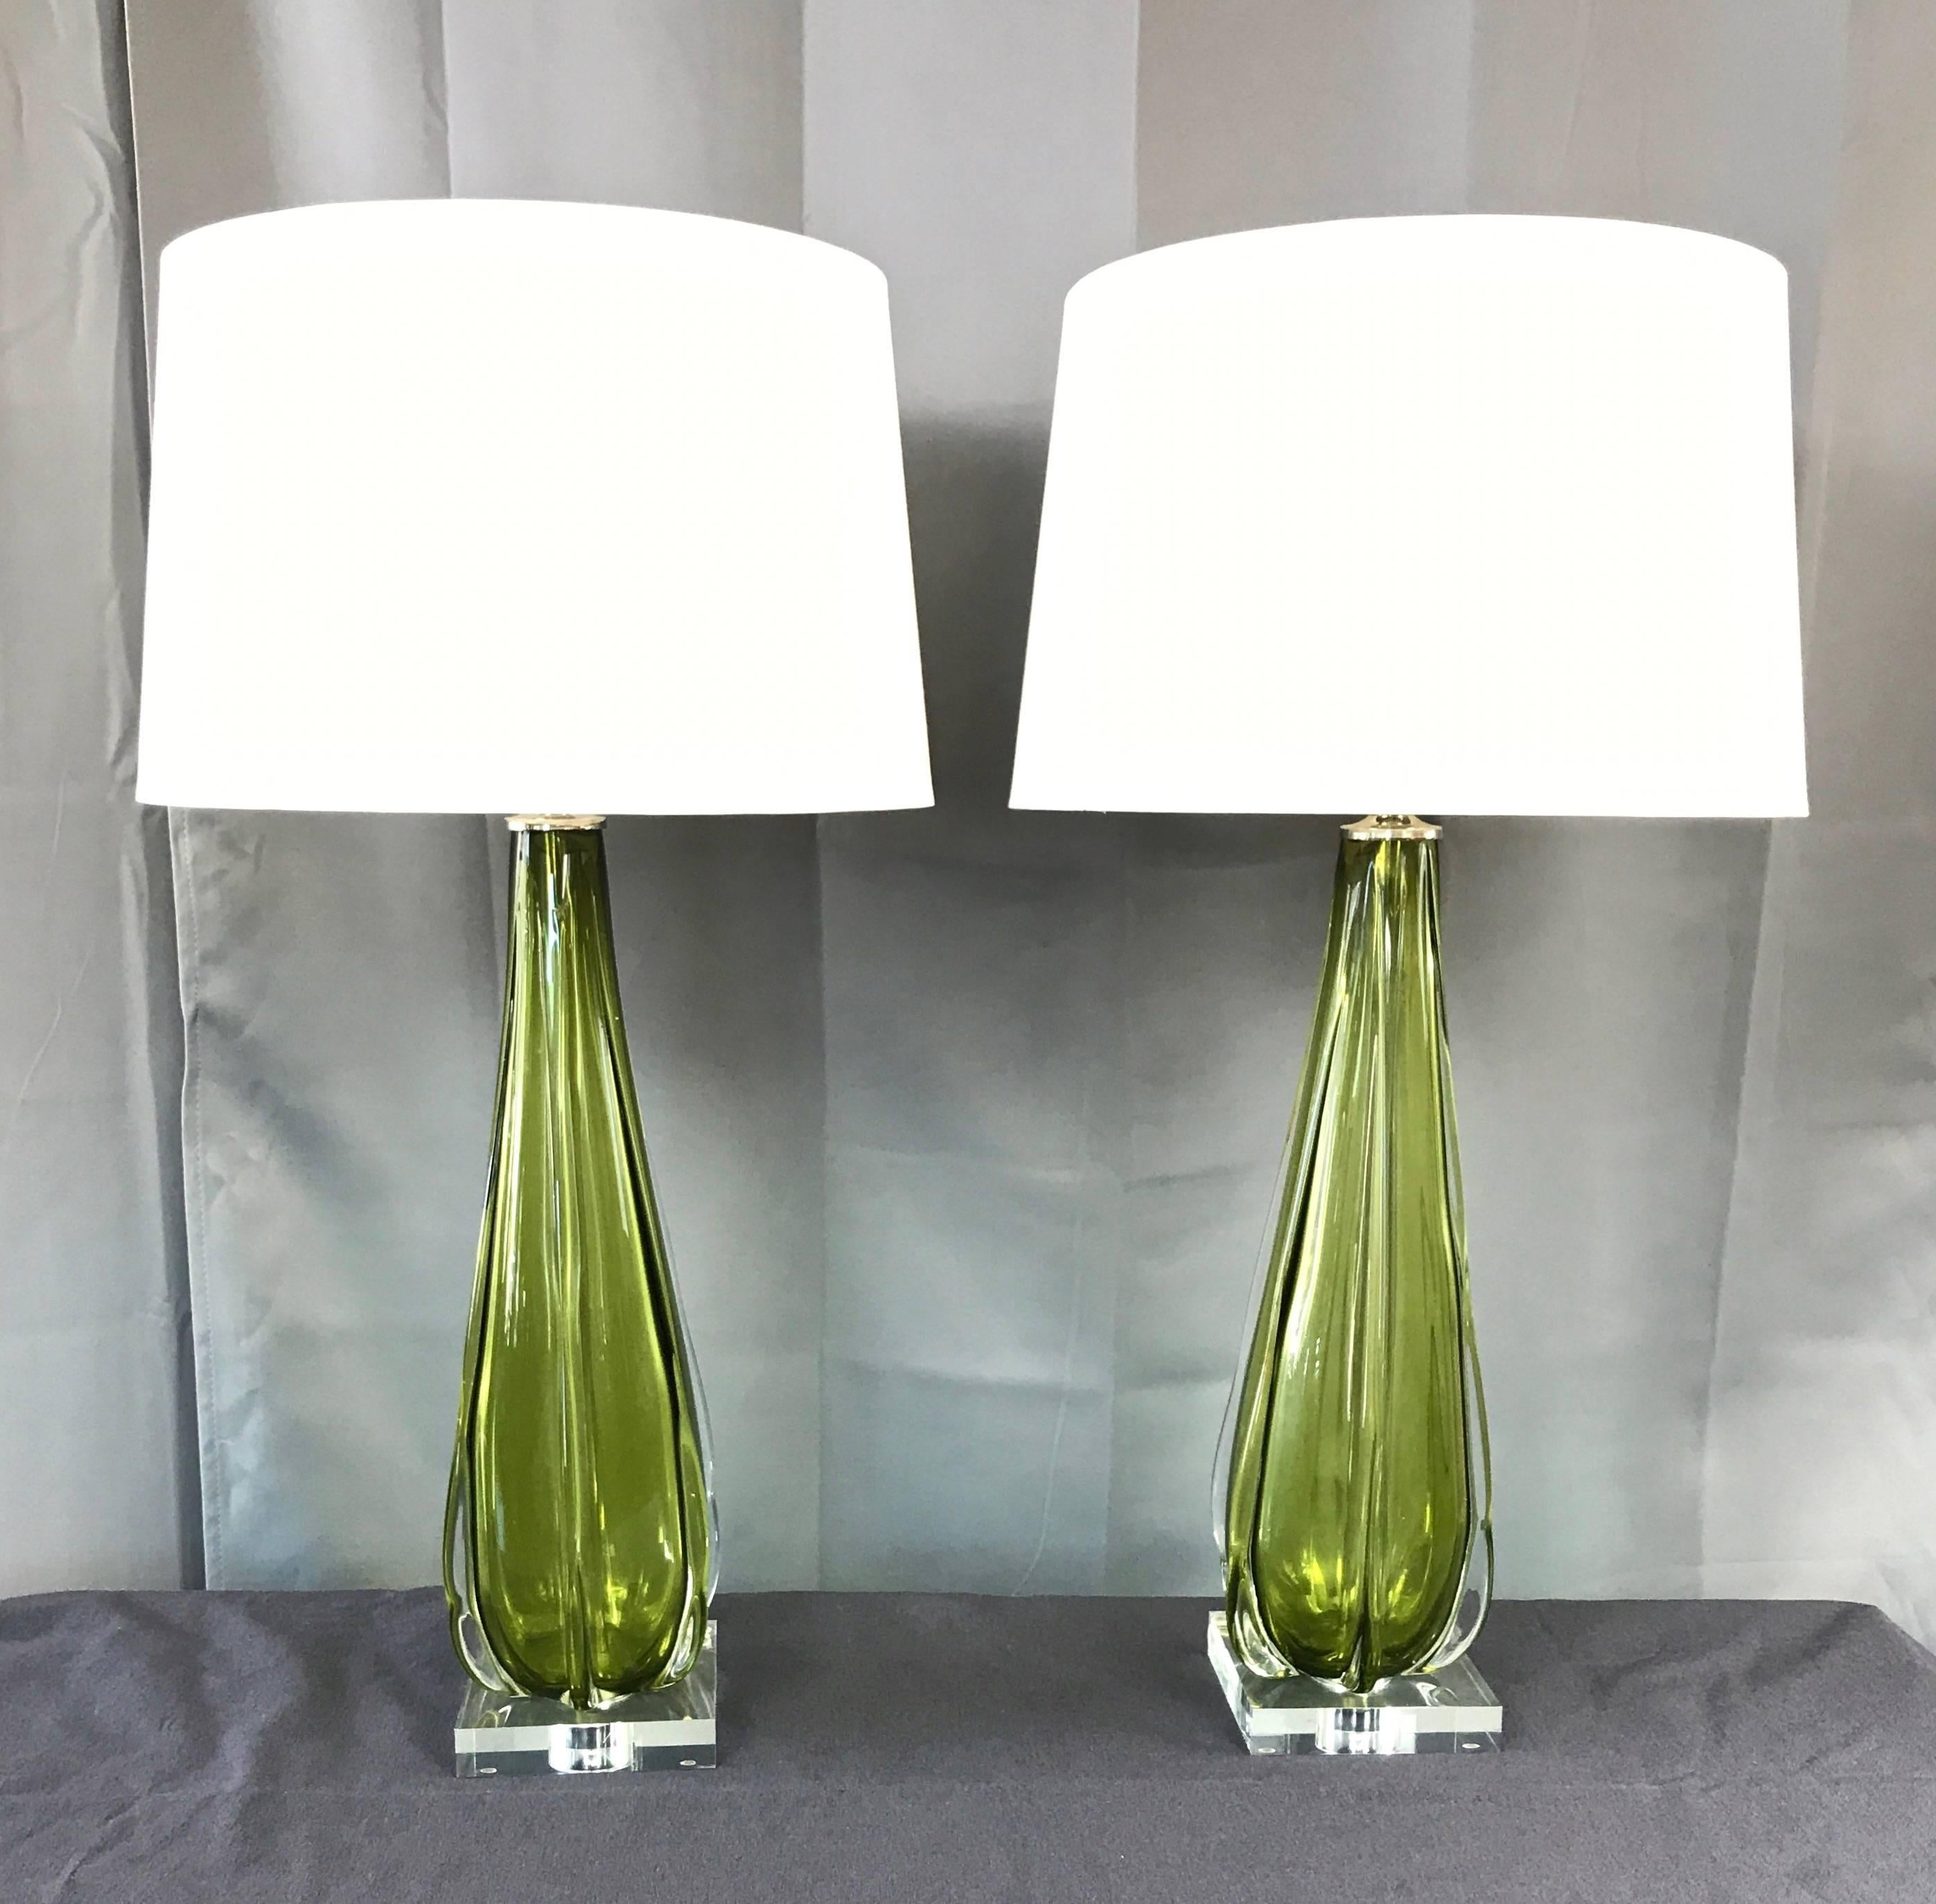 An Especially Elegant And Tall Pair Of Murano Glass Table Lamps With  Vintage Bodies By Seguso